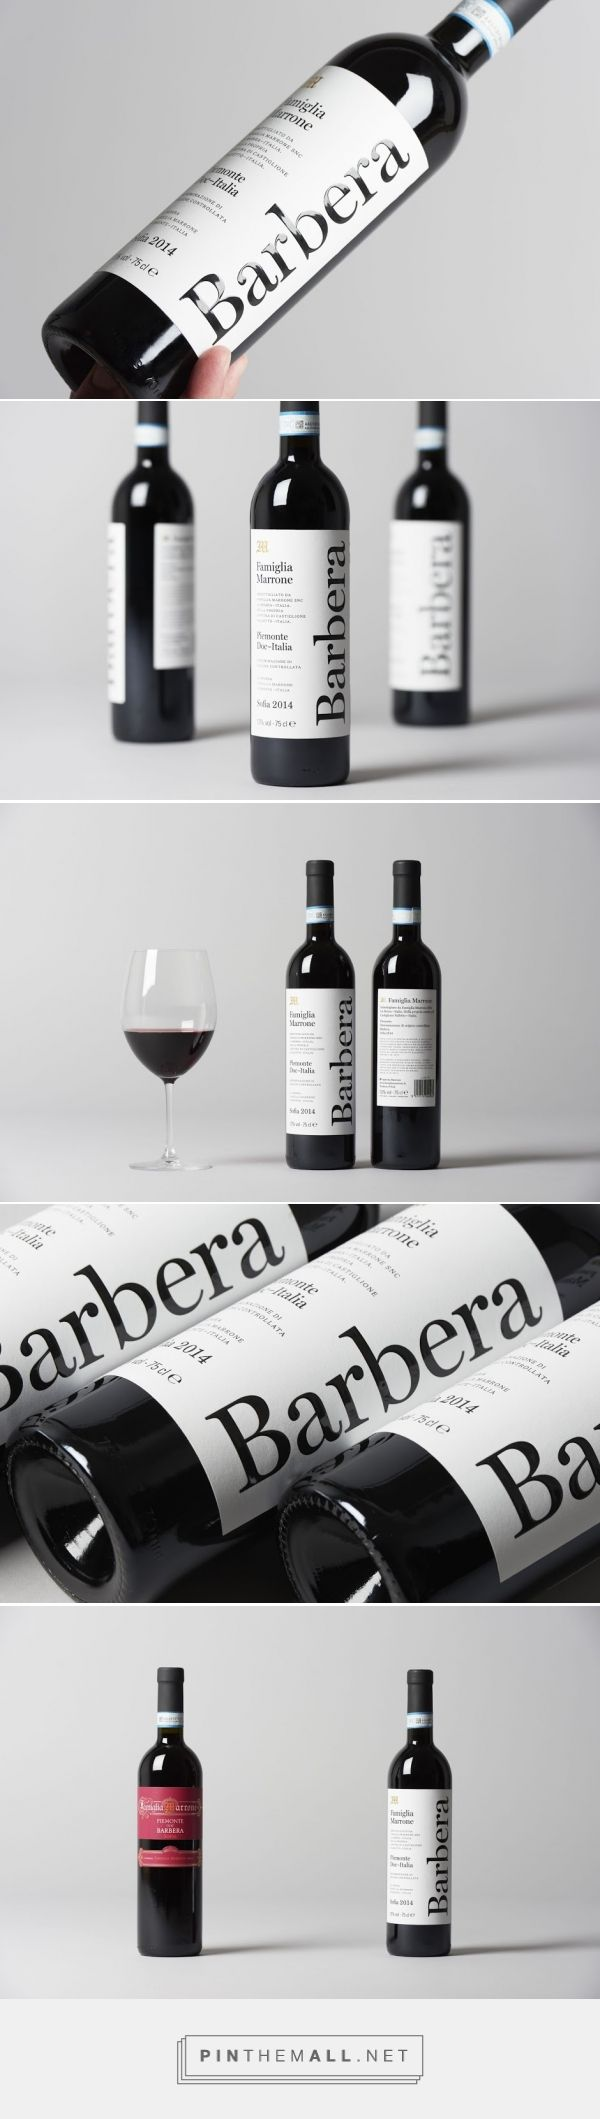 Barbera Marone Wine - Packaging of the World - Creative Package Design Gallery - http://www.packagingoftheworld.com/2016/05/barbera-marone.html